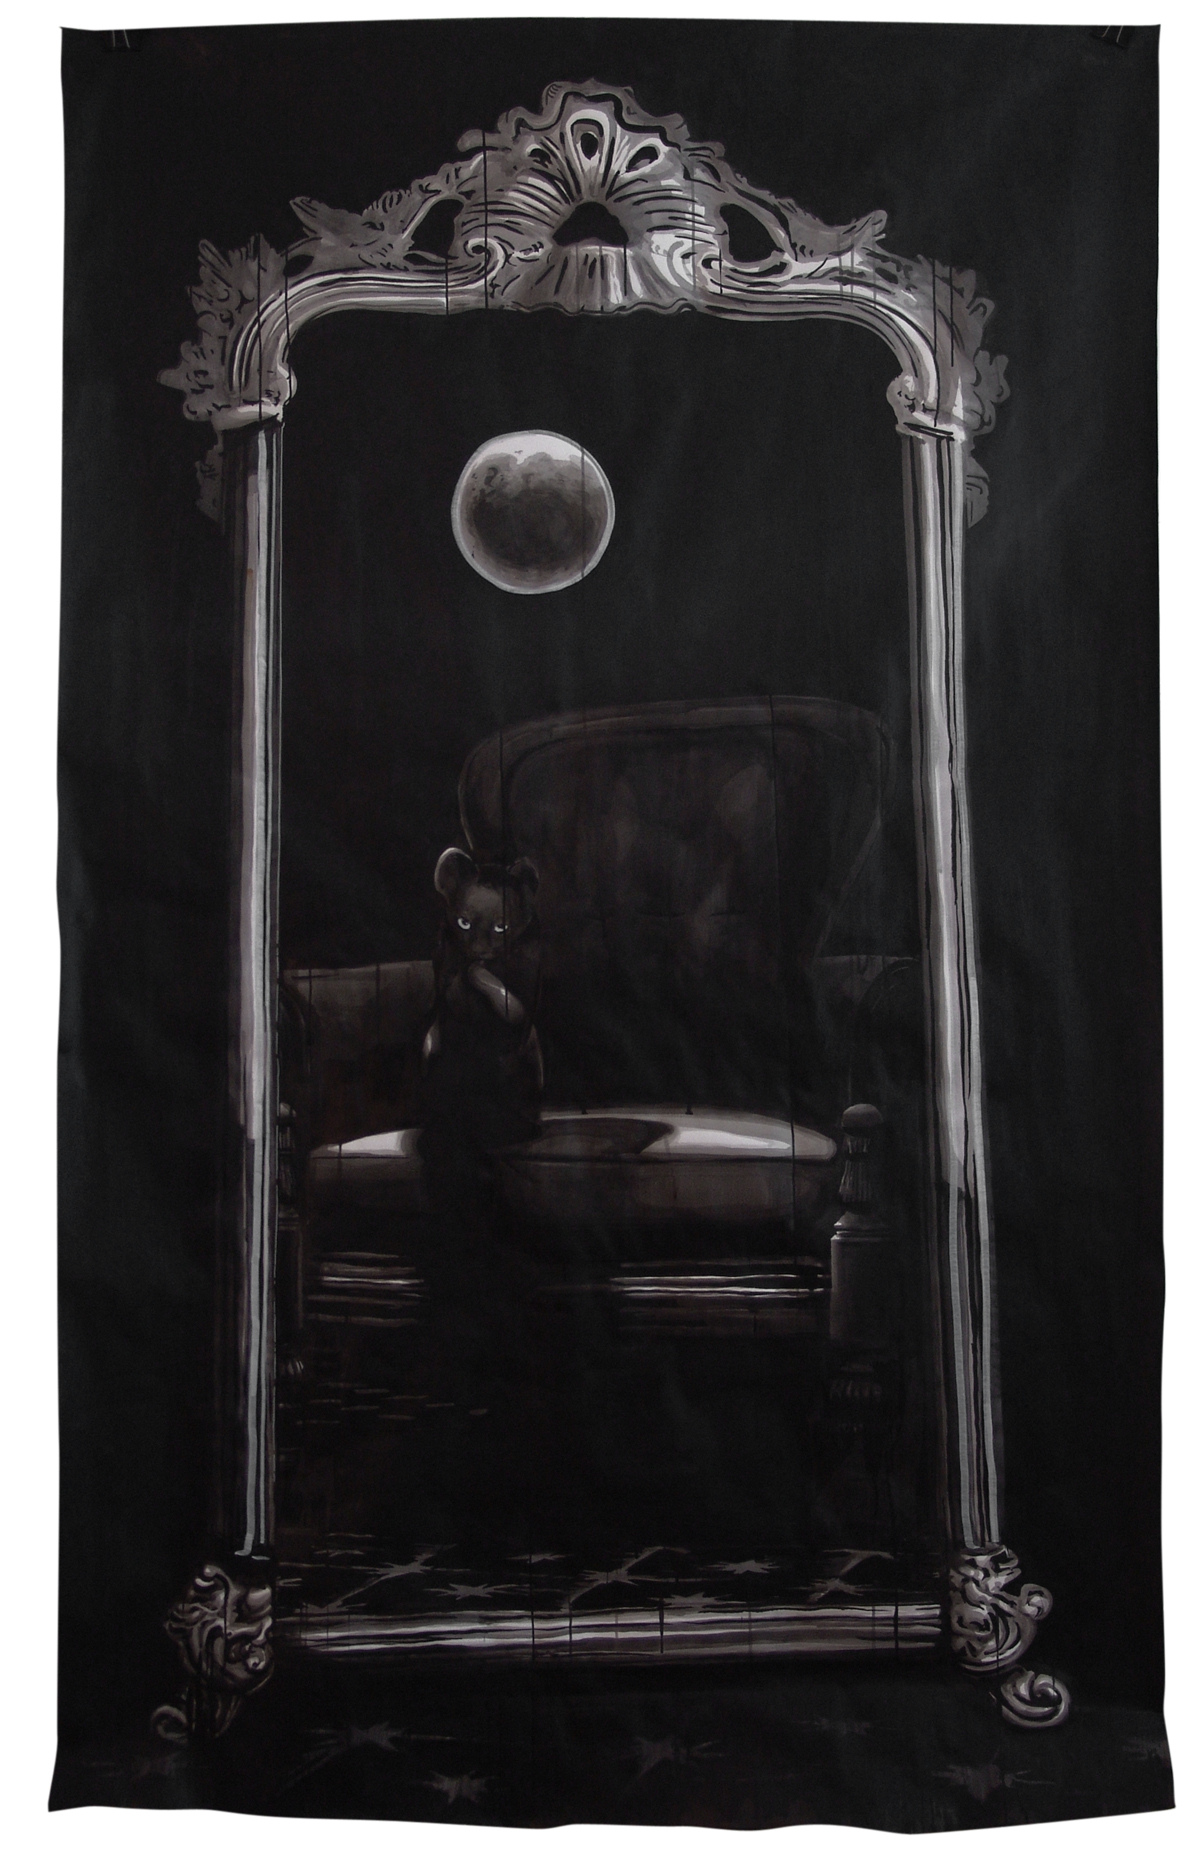 FULL MOON, 1m50 x 2m20 Indian ink & acrylic paint on paper, 2010, Alexandra Crouwers